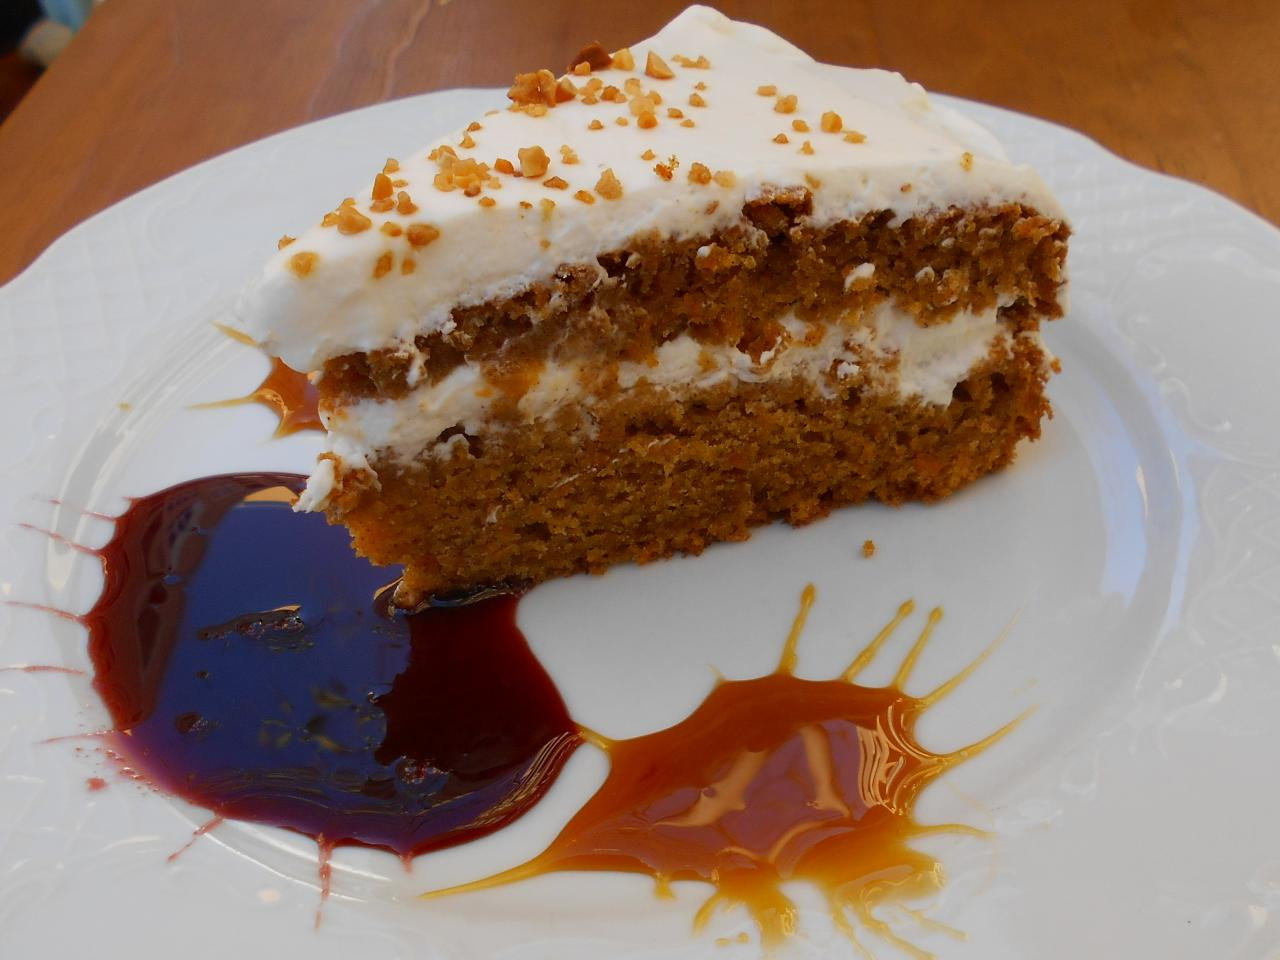 Josefina even does her own carrot cake